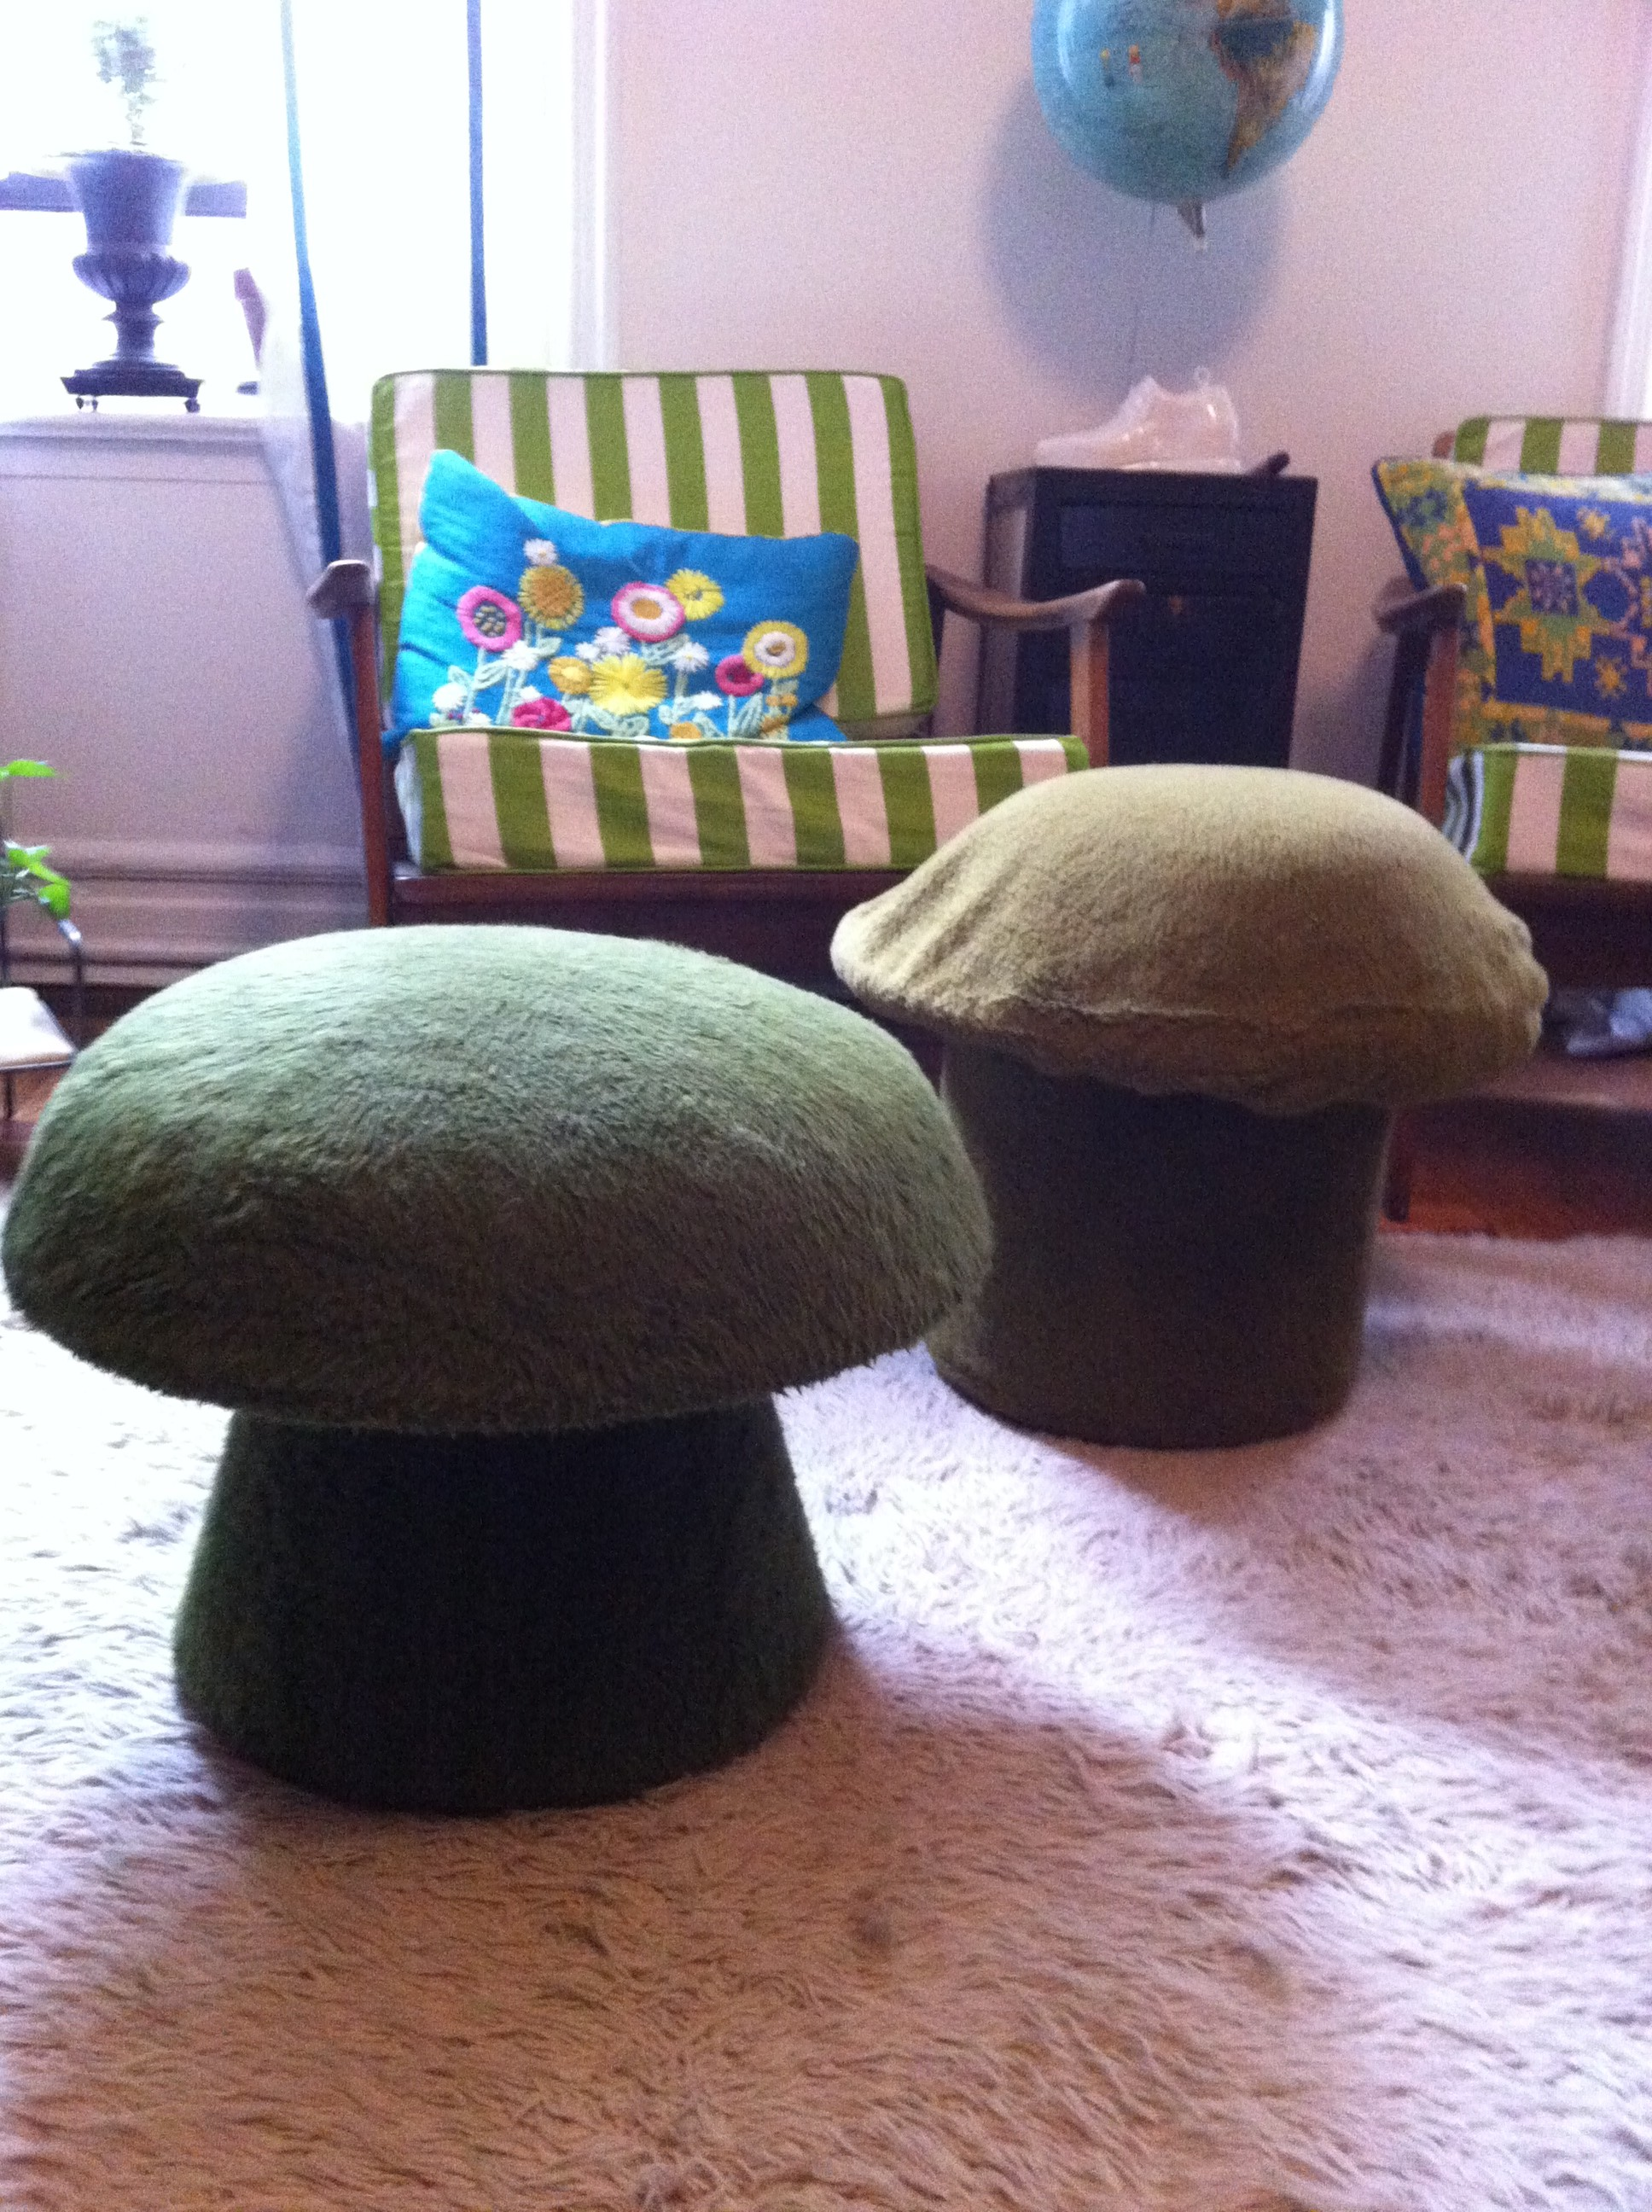 A pic of two mushroom shaped ottomans